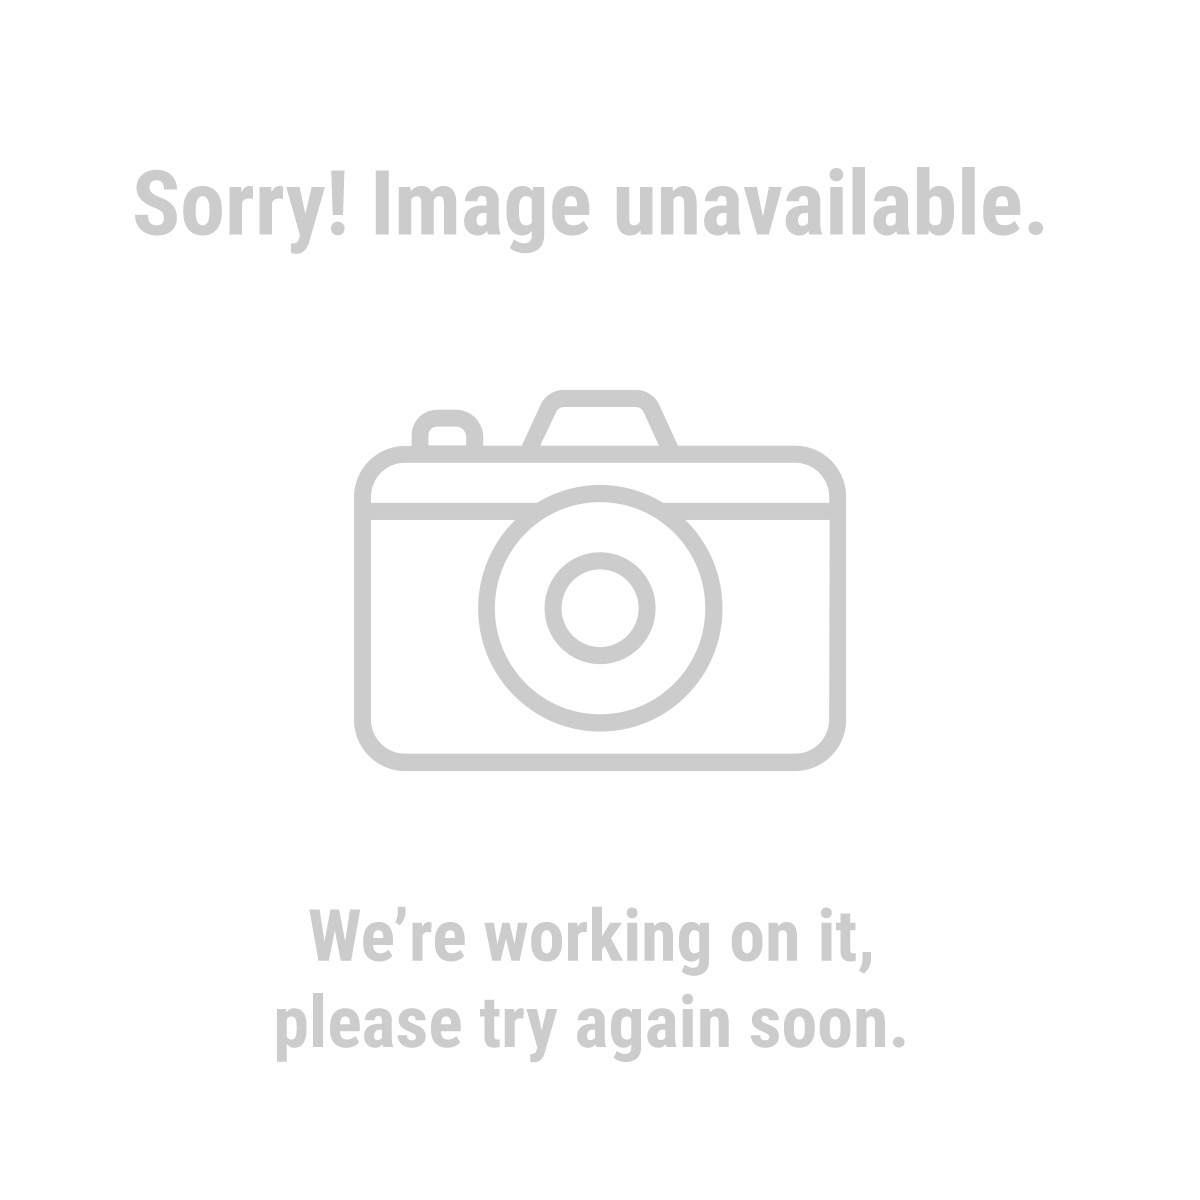 Pittsburgh 94011 3 Piece Thumbwheel Ratchet Set